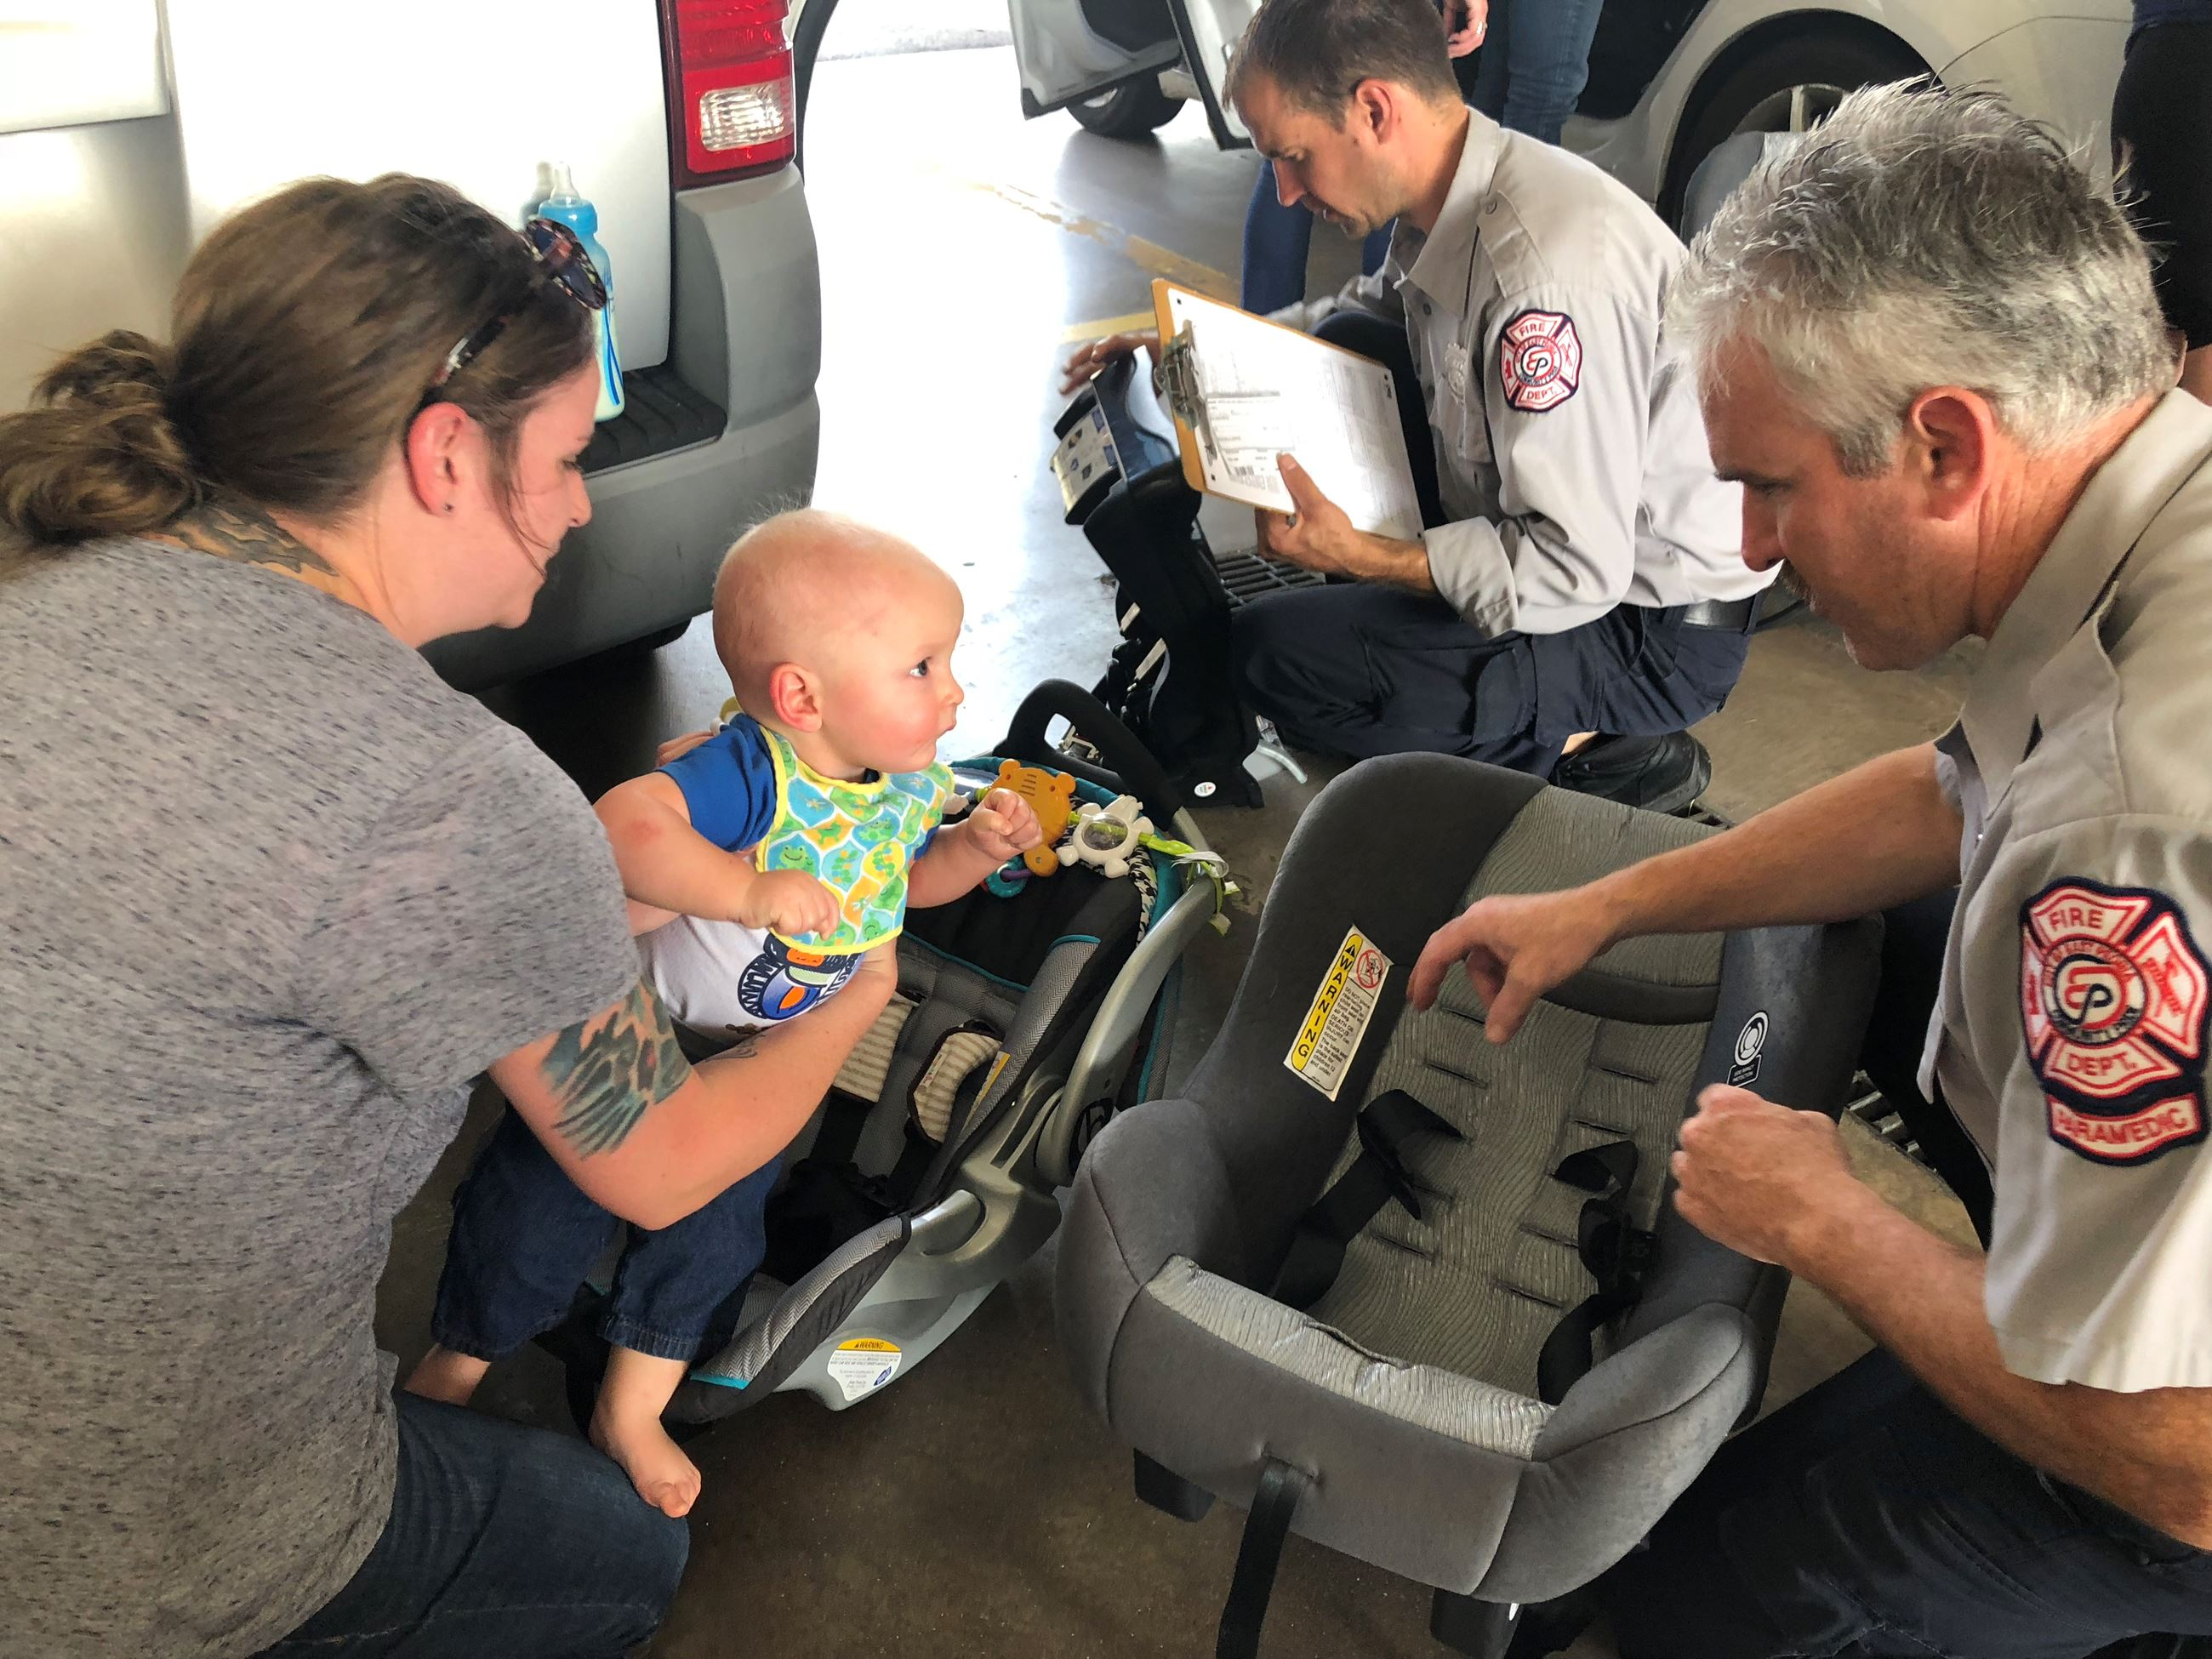 Mom and firefighters checking baby's car seat